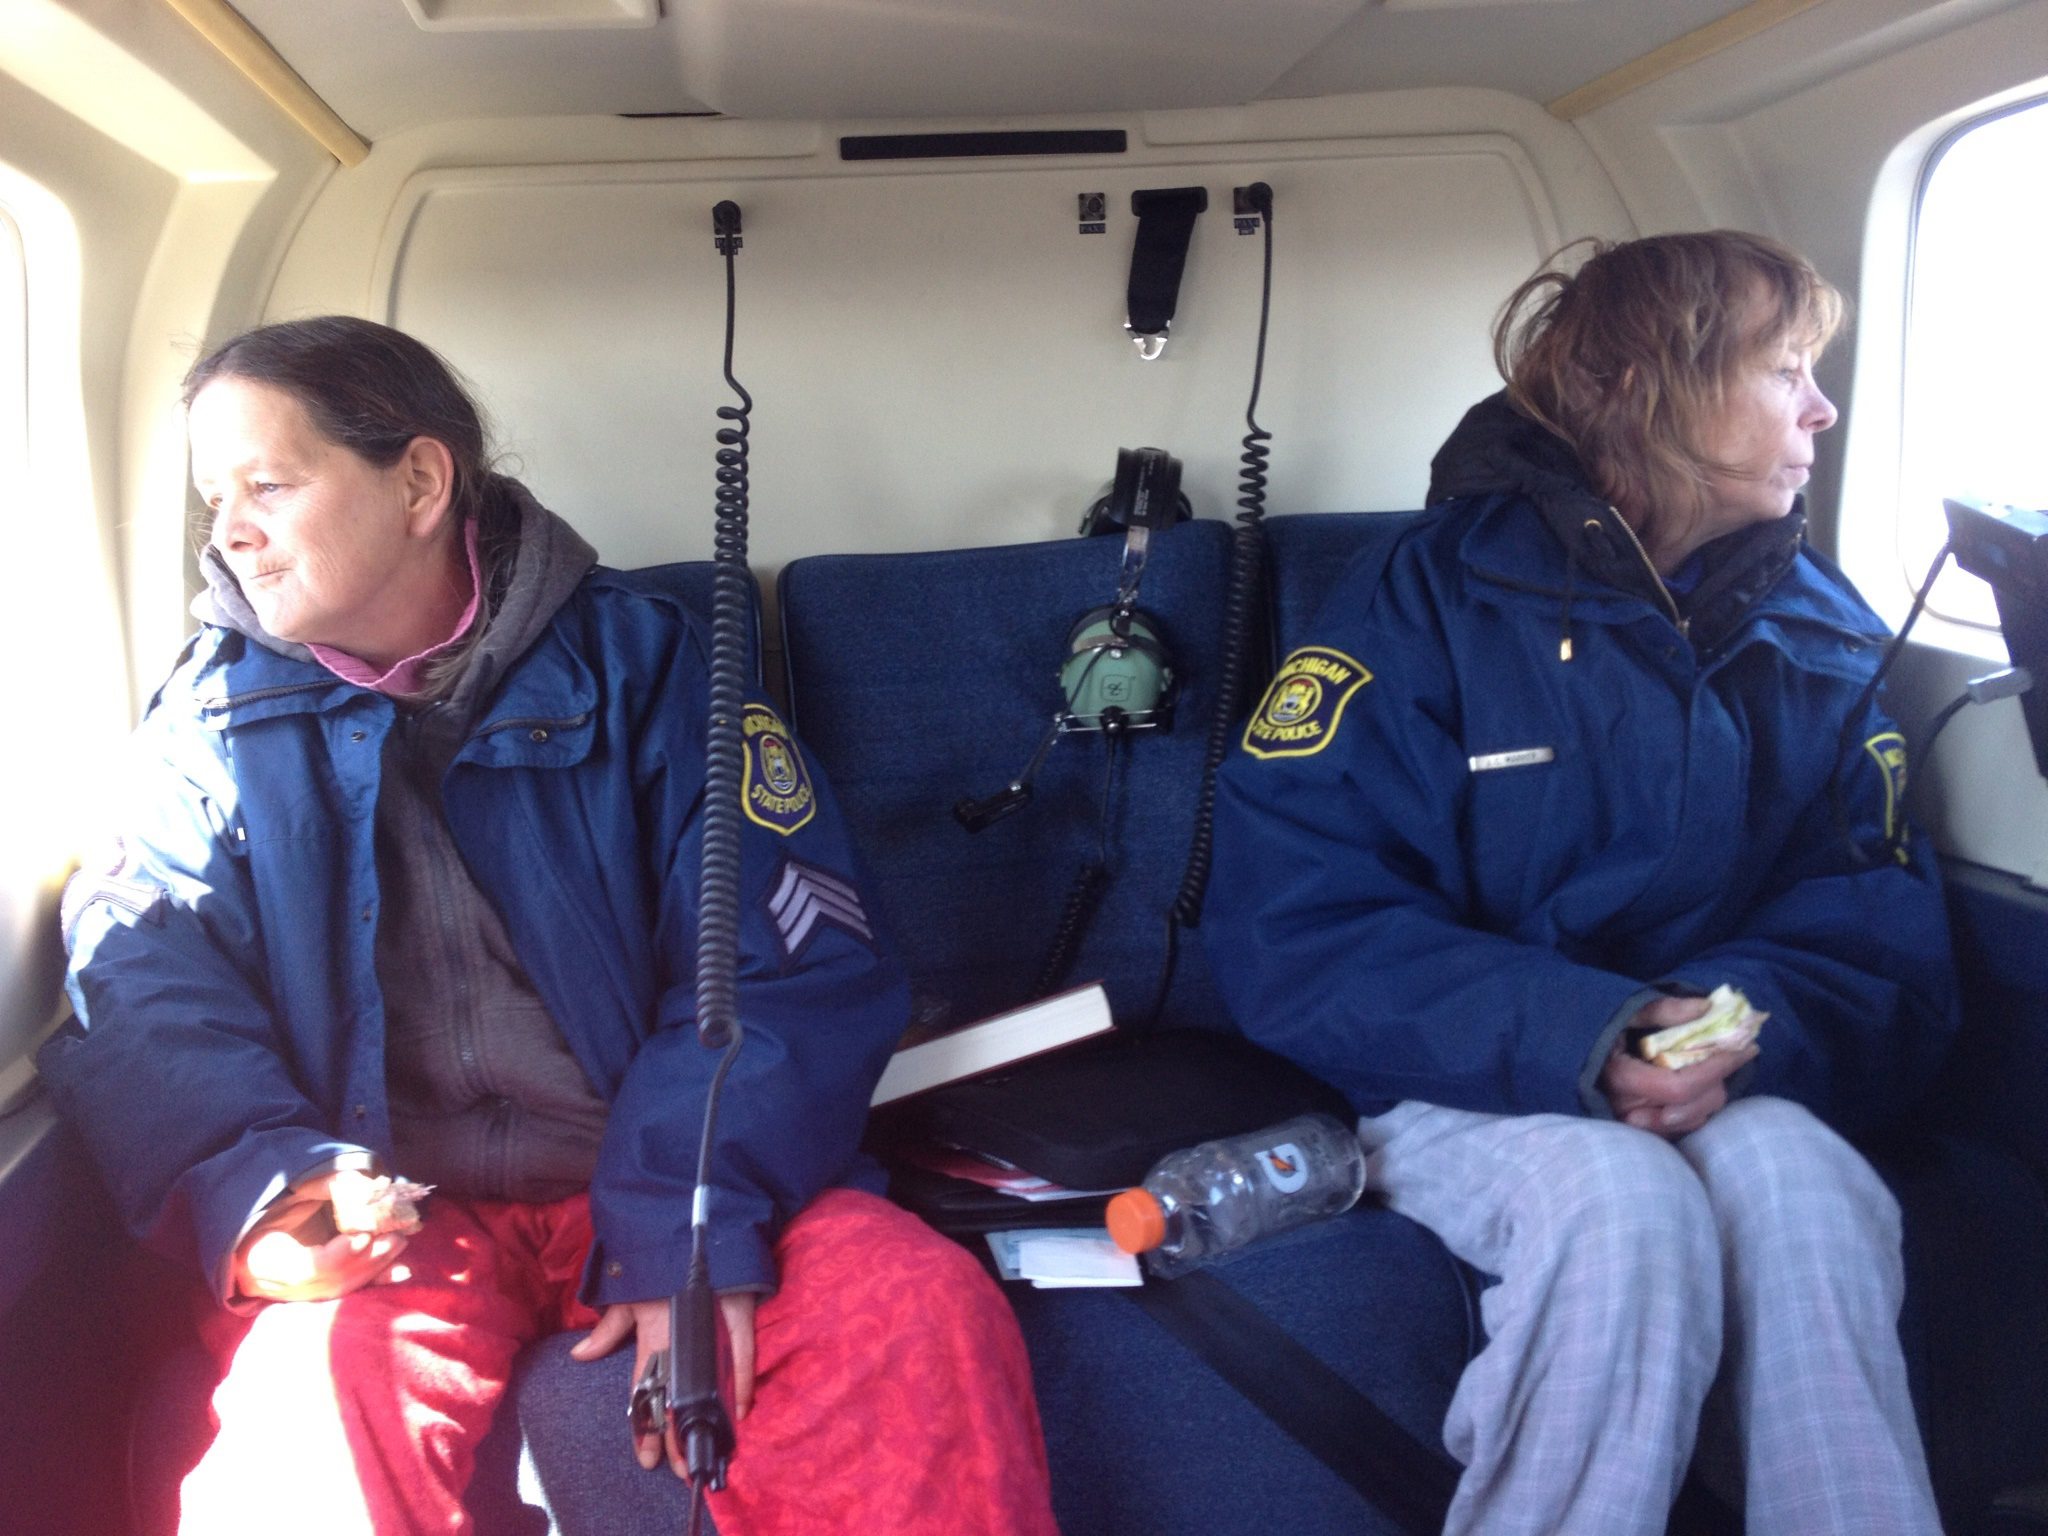 Lee Wright (L) and Leslie Roy (R) after being rescued by Michigan State Police, April 24, 2015.